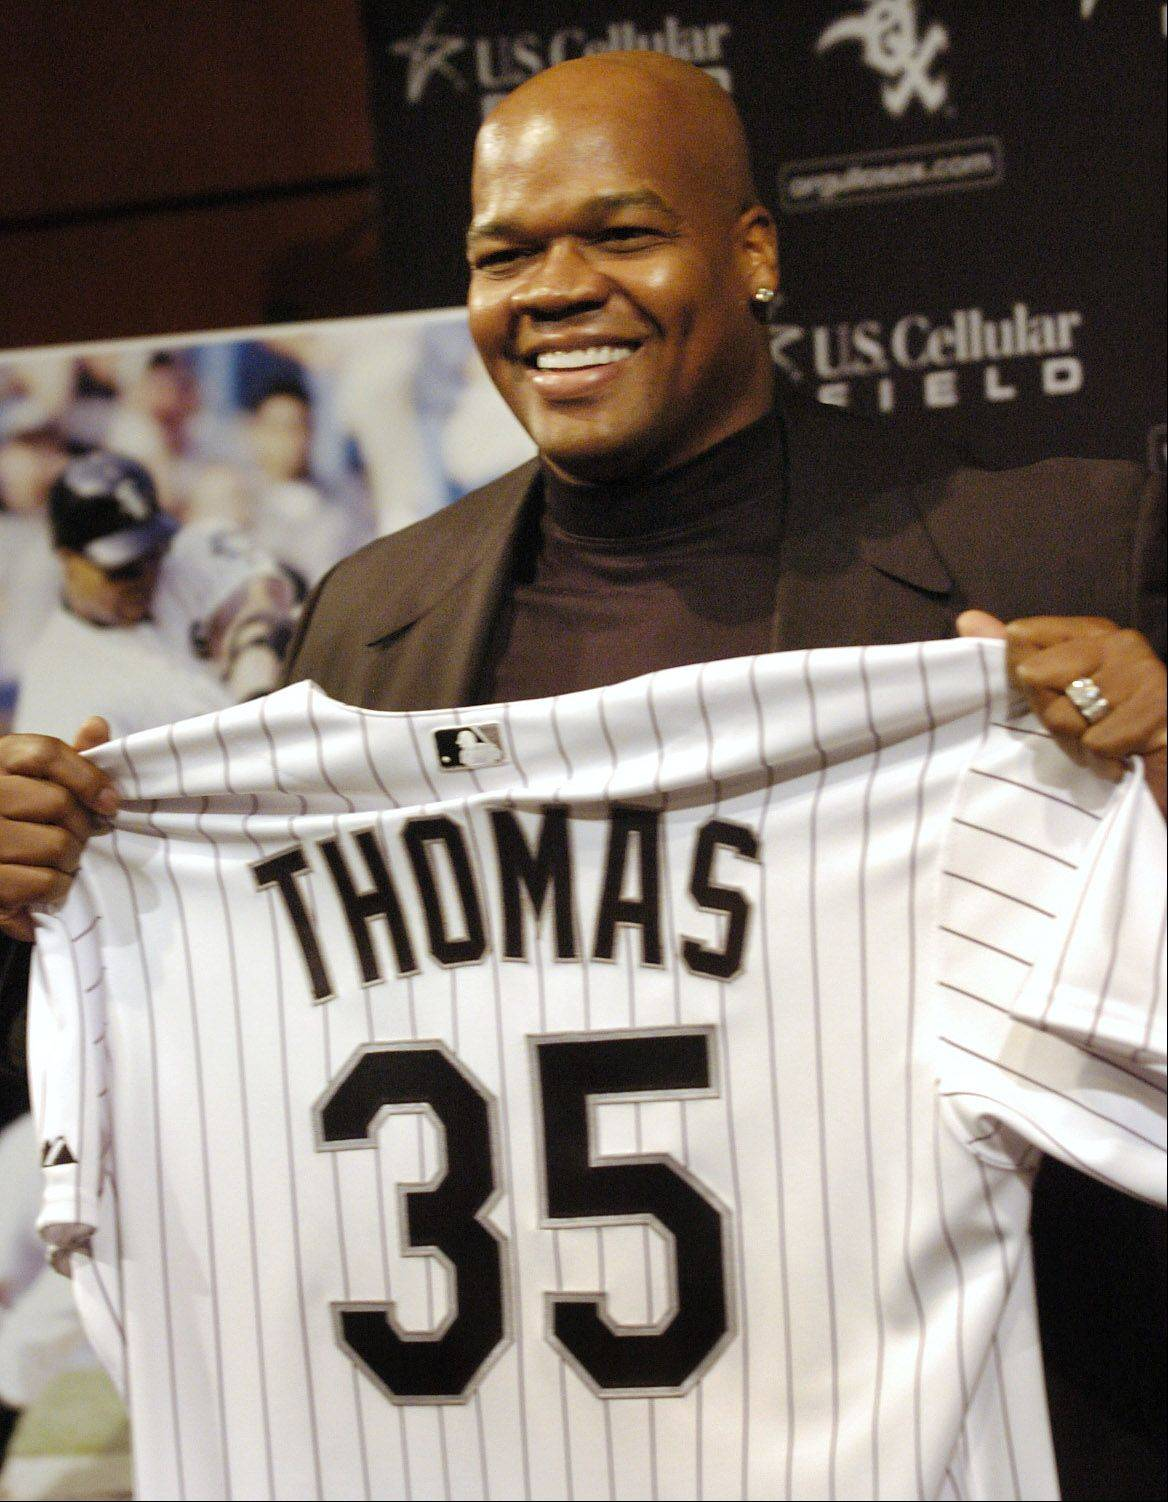 Frank Thomas, who retired following the 2008 season with a career .301 batting average, 2,468 hits, 521 home runs and 1,704 RBI, is eligible for the Hall of Fame next year.